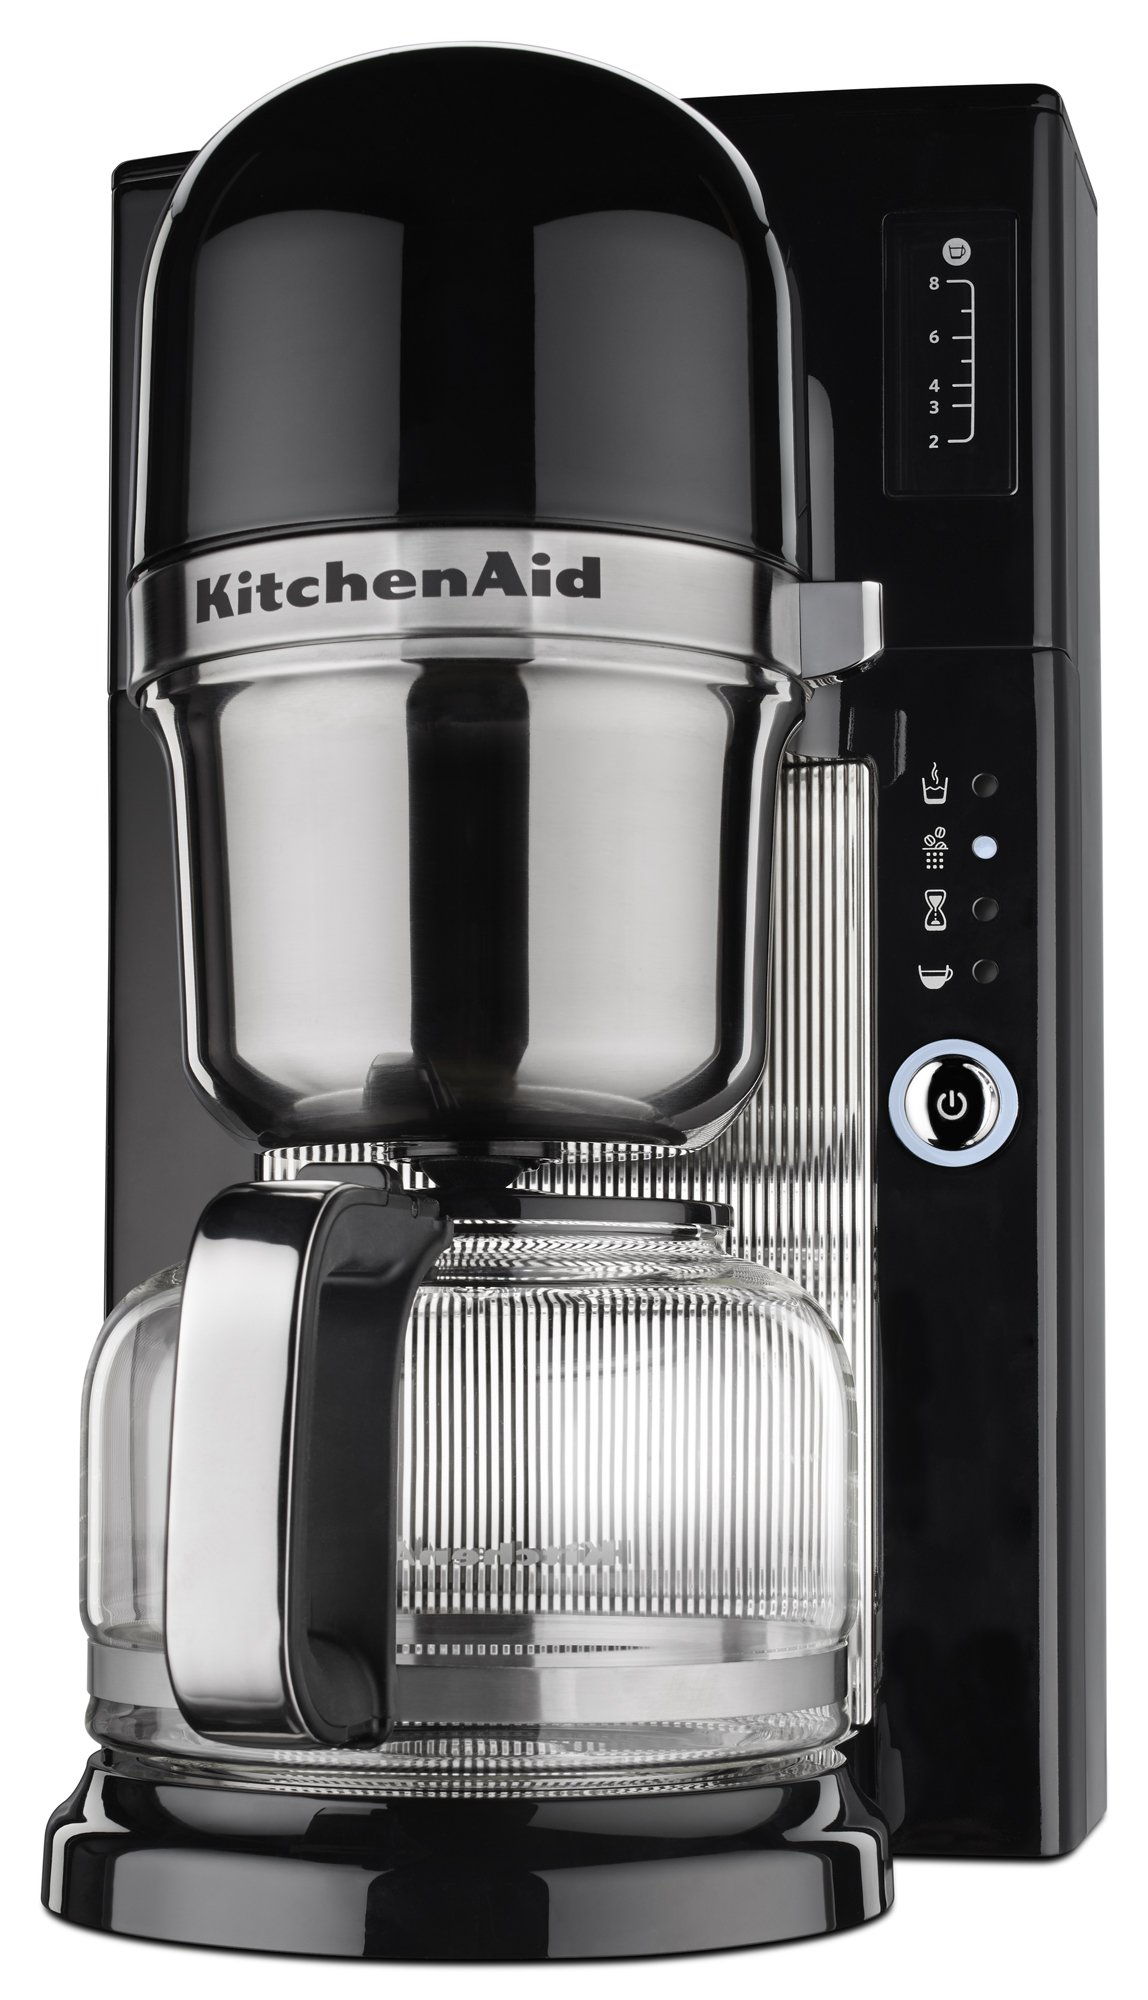 KitchenAid KCM0801OB Pour Over Coffee Brewer, Onyx Black